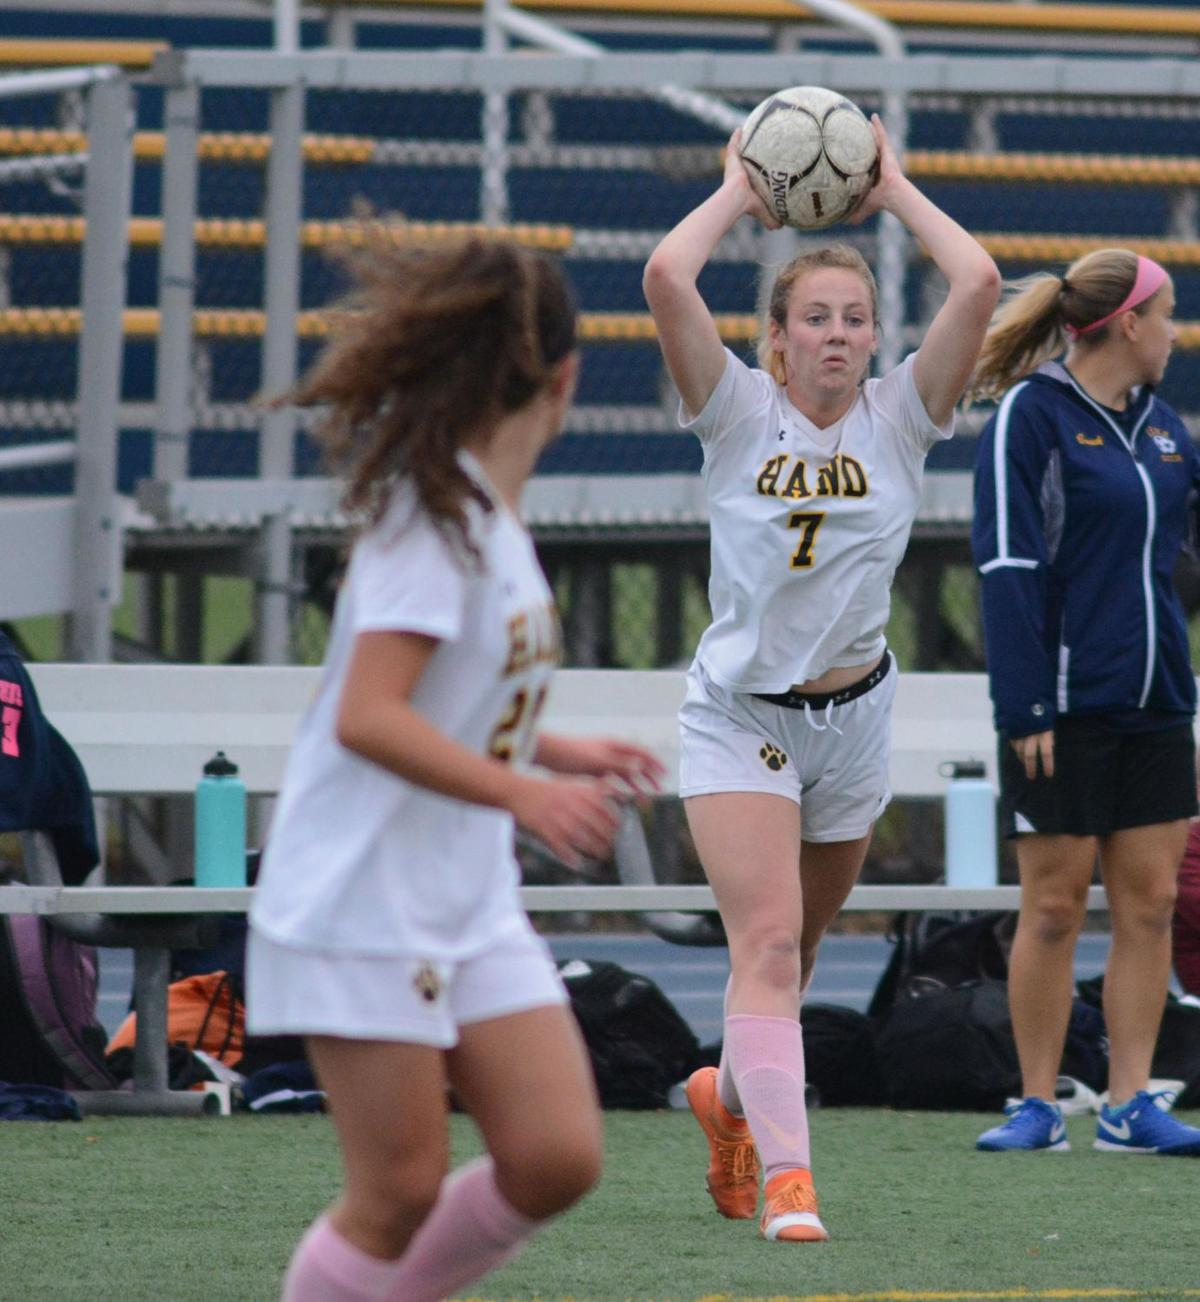 Hand, East Haven play to a scoreless tie